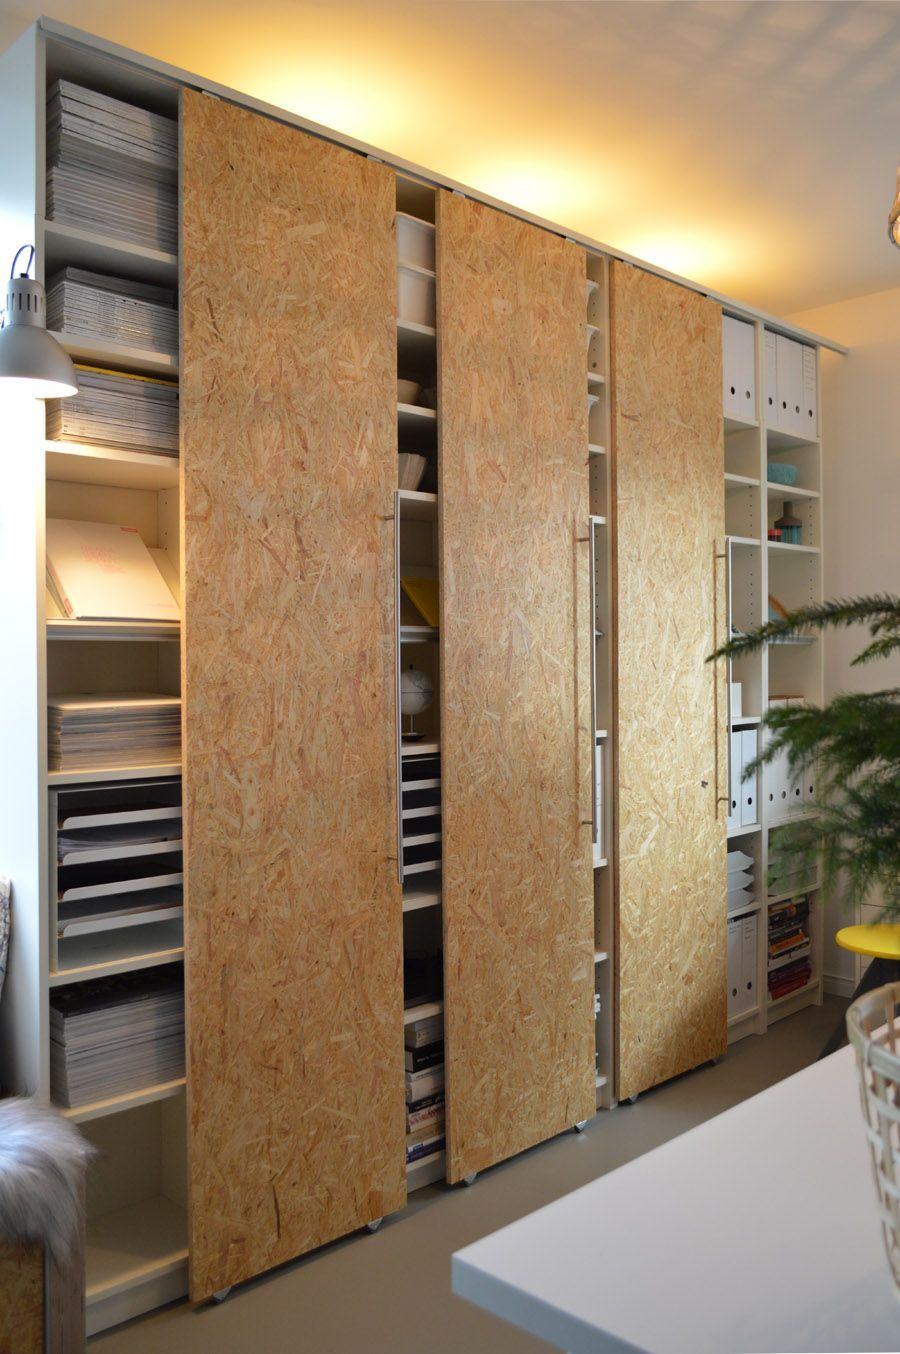 Diy Schiebeturen Fur Ikea Billy Regale Selber Machen Billy Diy Fur Ikea Machen Paxgarderobe Regale Sch In 2020 Diy Sliding Door Ikea Diy Ikea Billy Bookcase